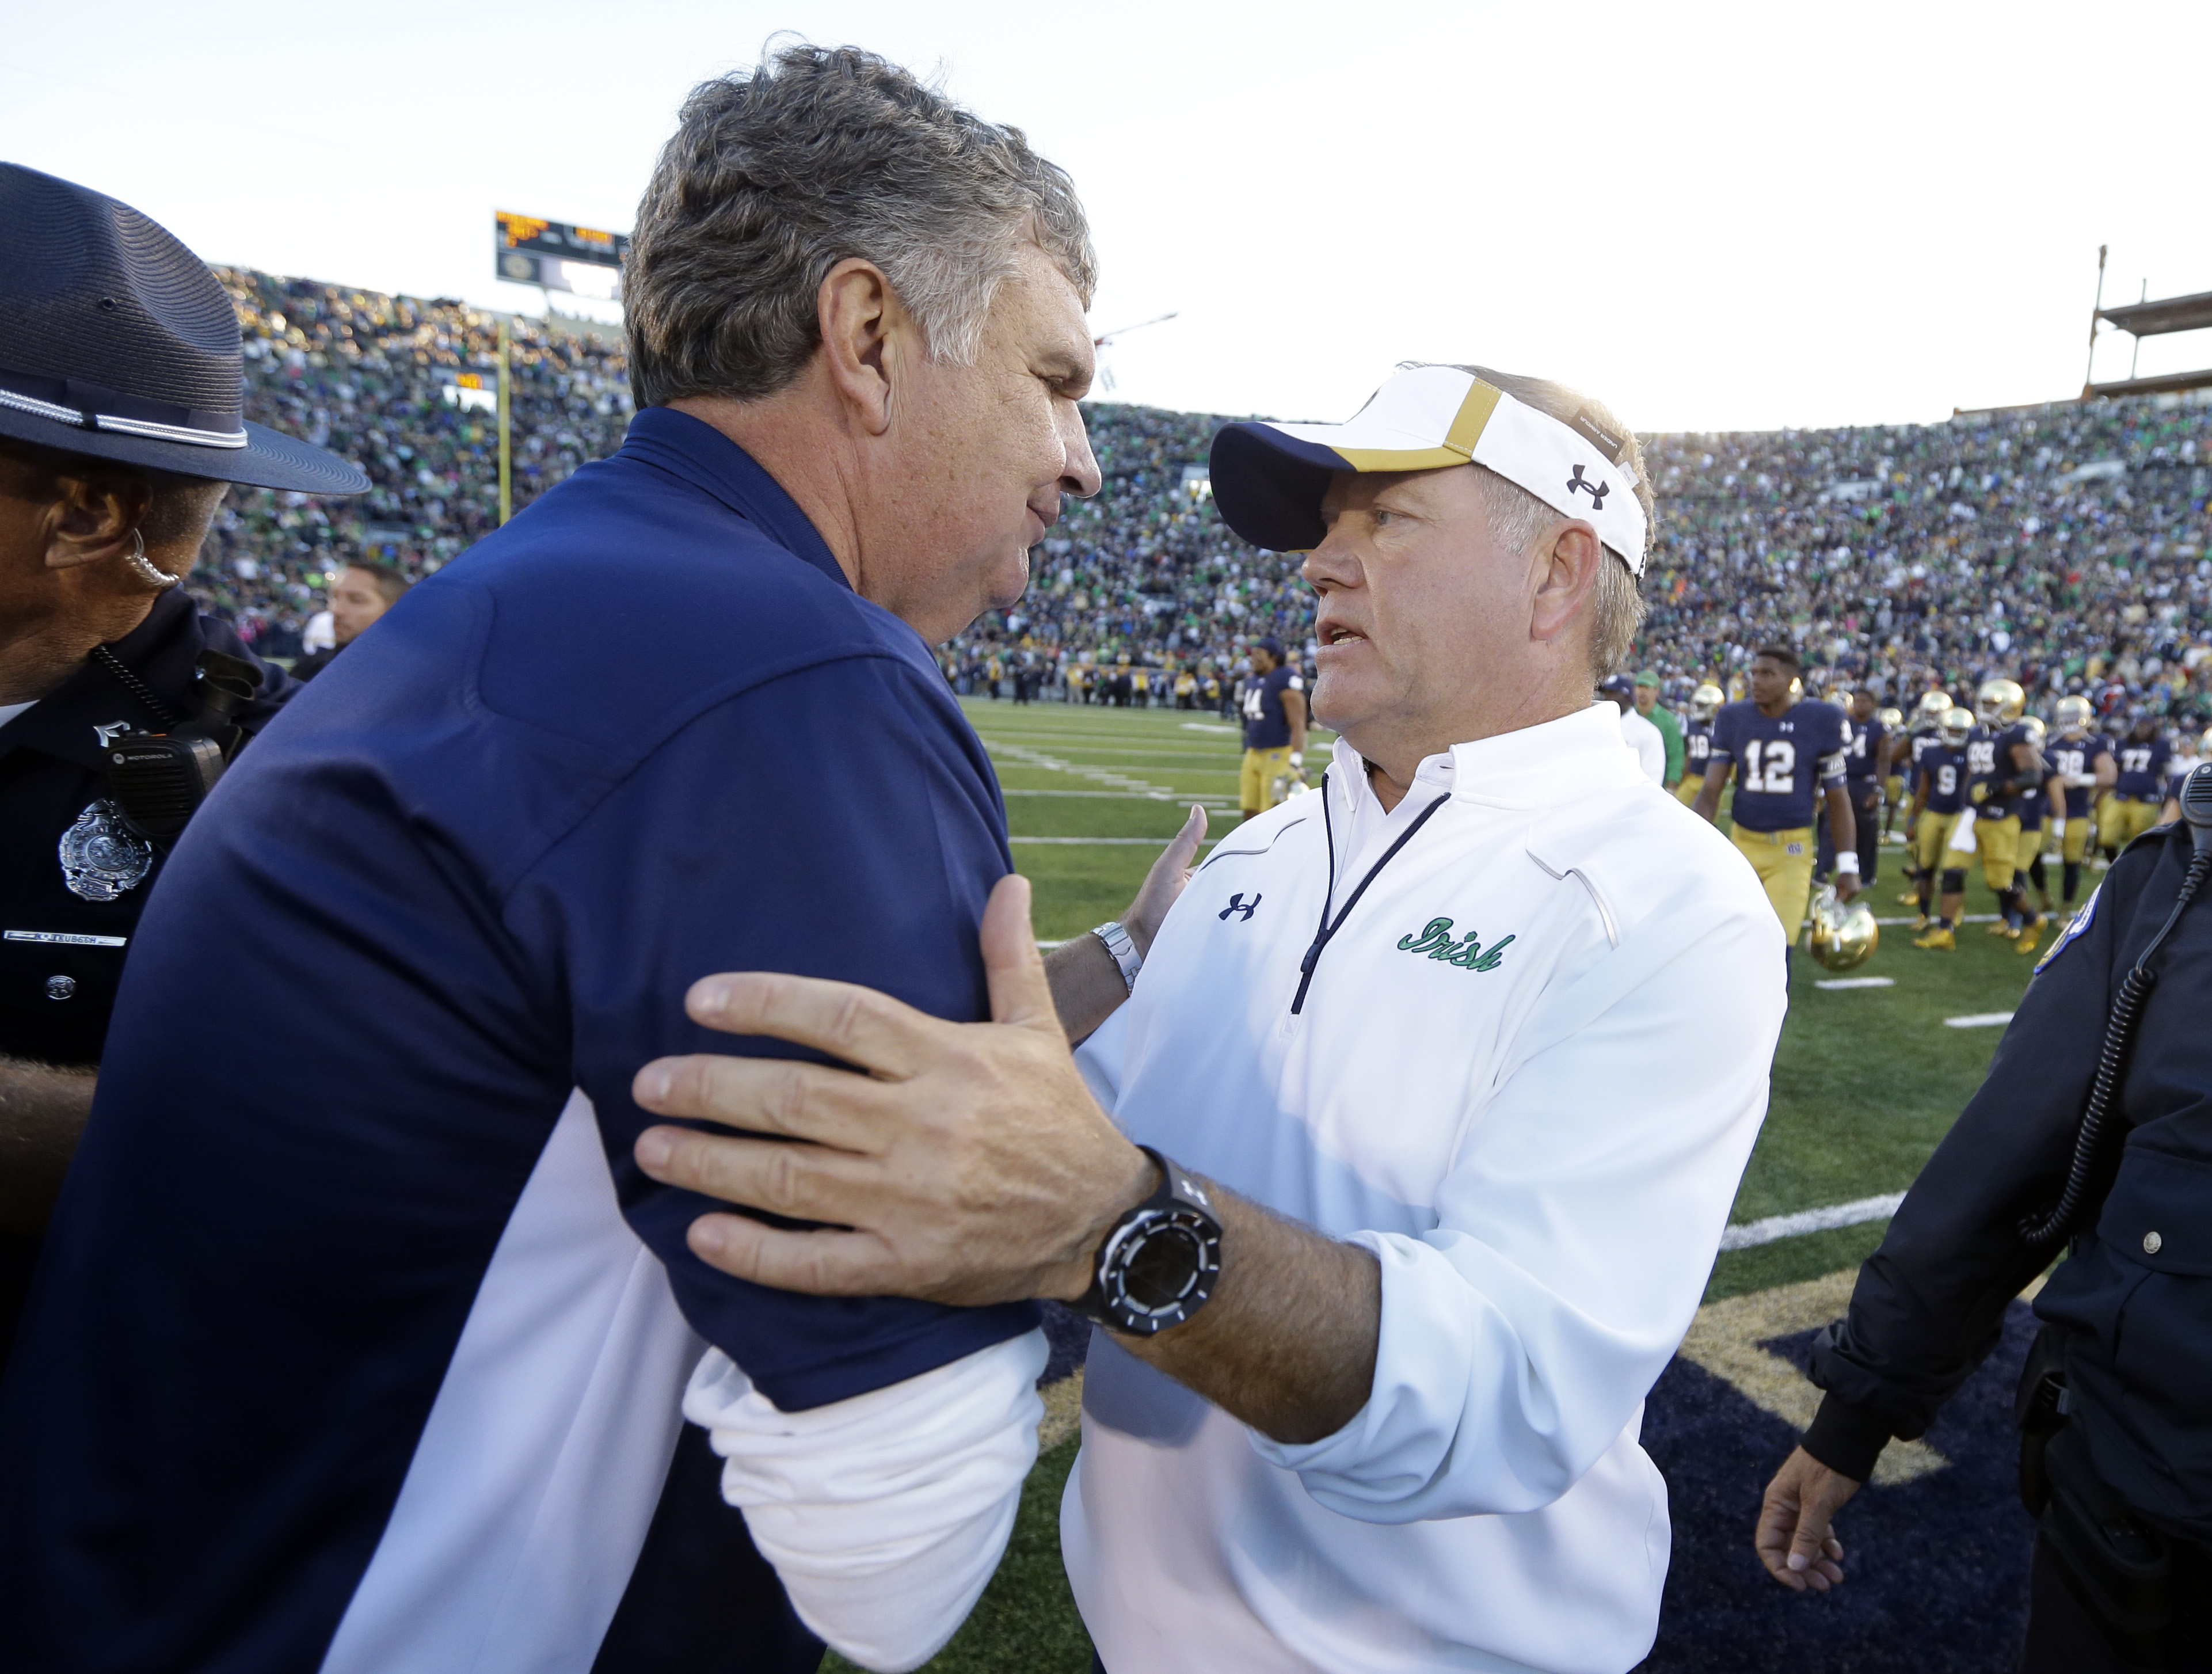 Notre Dame coach Brian Kelly, right, is greeted by Georgia Tech coach Paul Johnson following an NCAA college football game in South Bend, Ind., Saturday, Sept. 19, 2015. Notre Dame defeated Georgia Tech 30-22. (AP Photo/Michael Conroy)